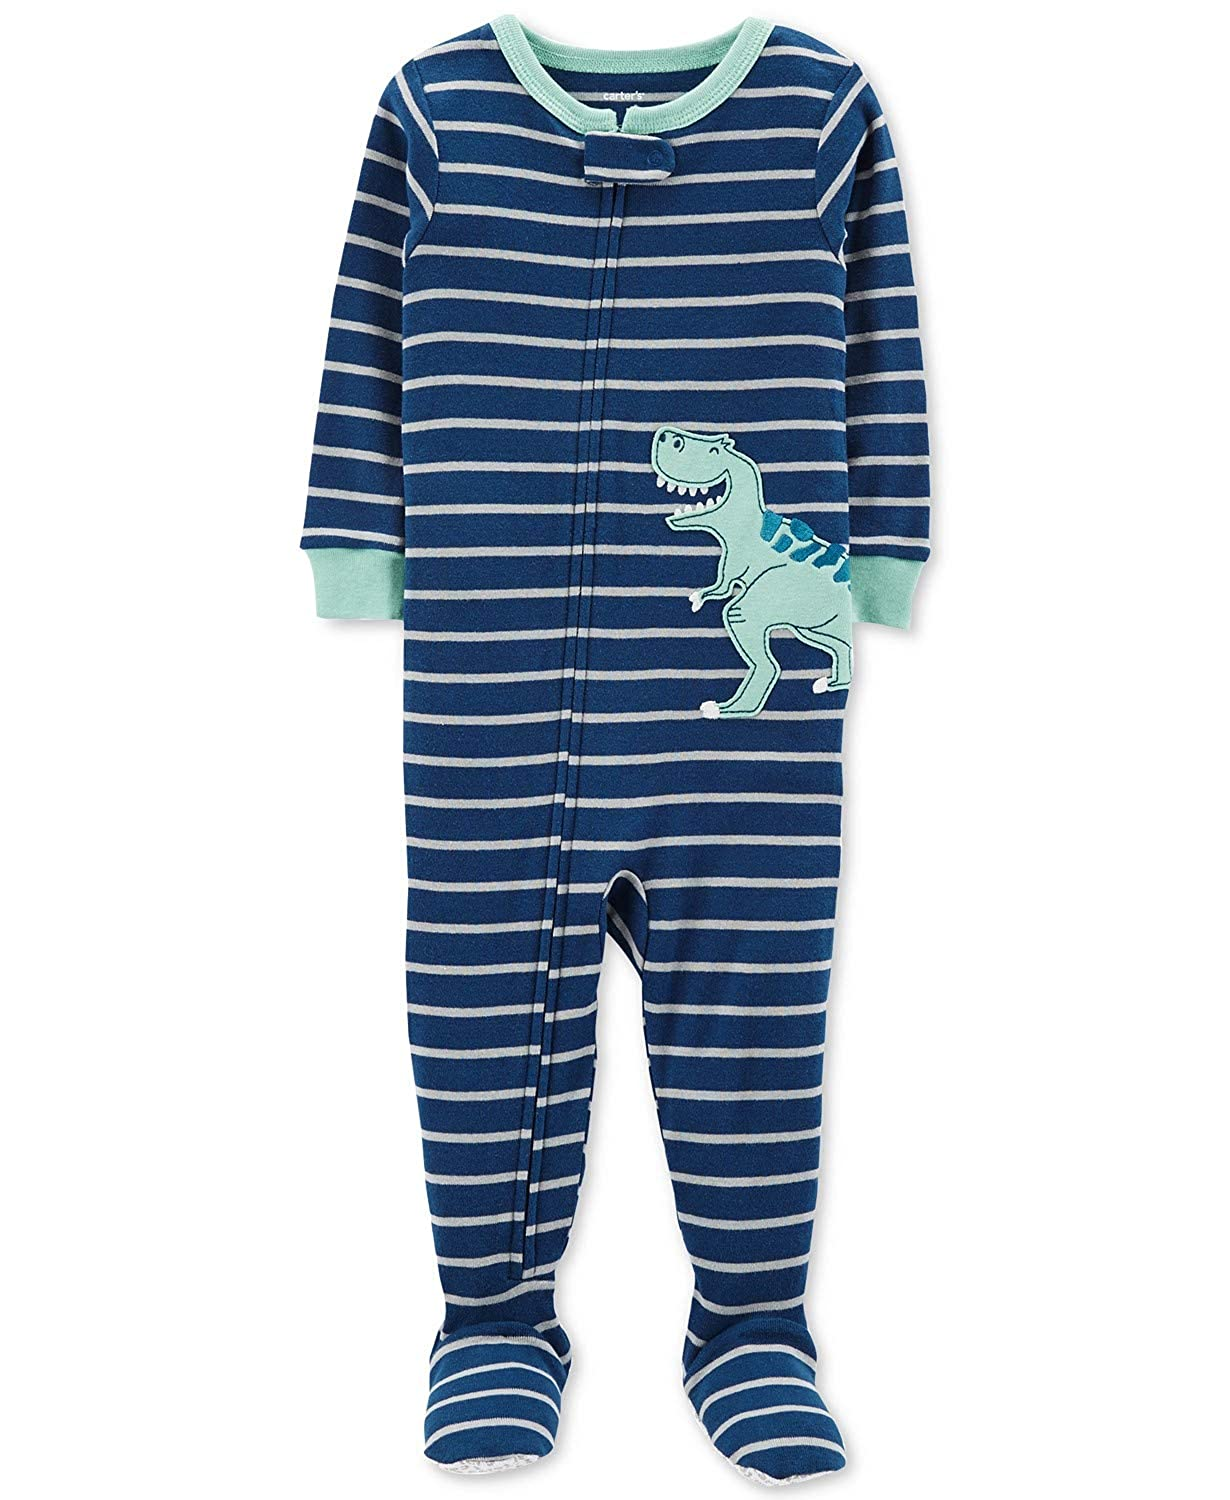 b7f67609b Amazon.com  Carter s Baby Boys  1 Piece Cotton Footed Sleepers  Clothing